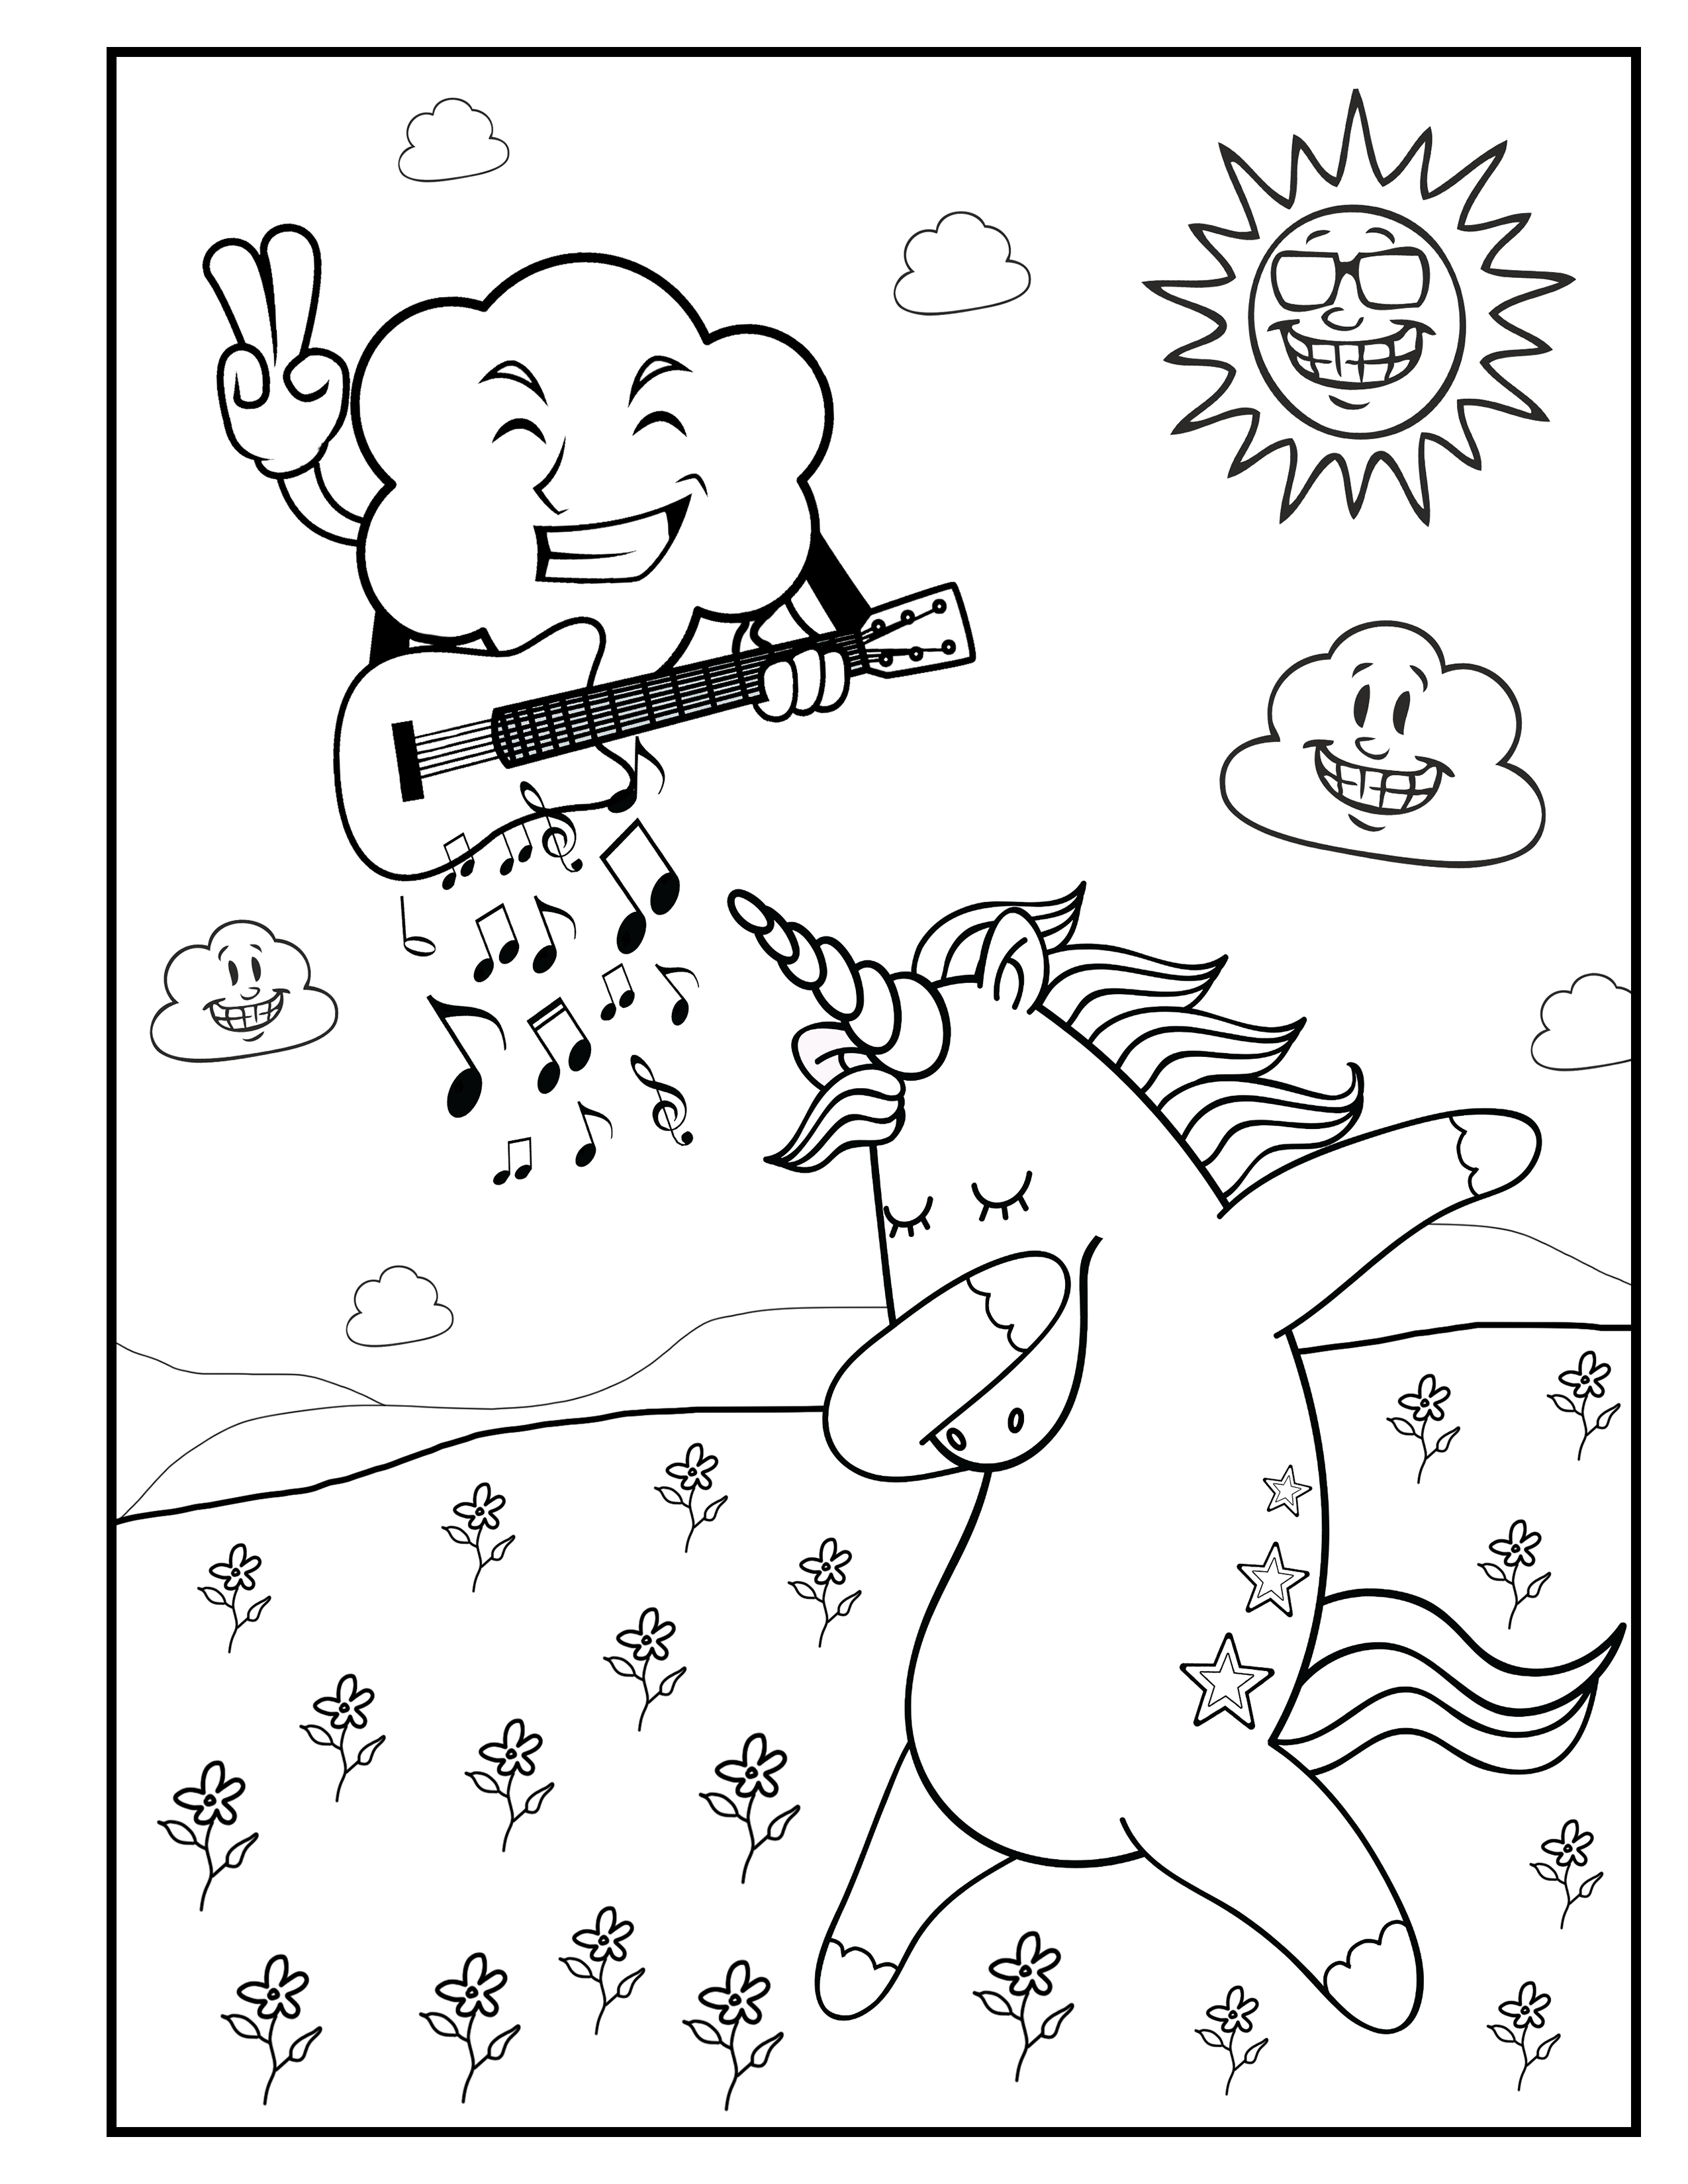 Music For The Happy Unicorn Unicorn Coloring Book For Kids By Katrin Brown Image 1 Dance Coloring Pages Coloring Pages Funny Coloring Book